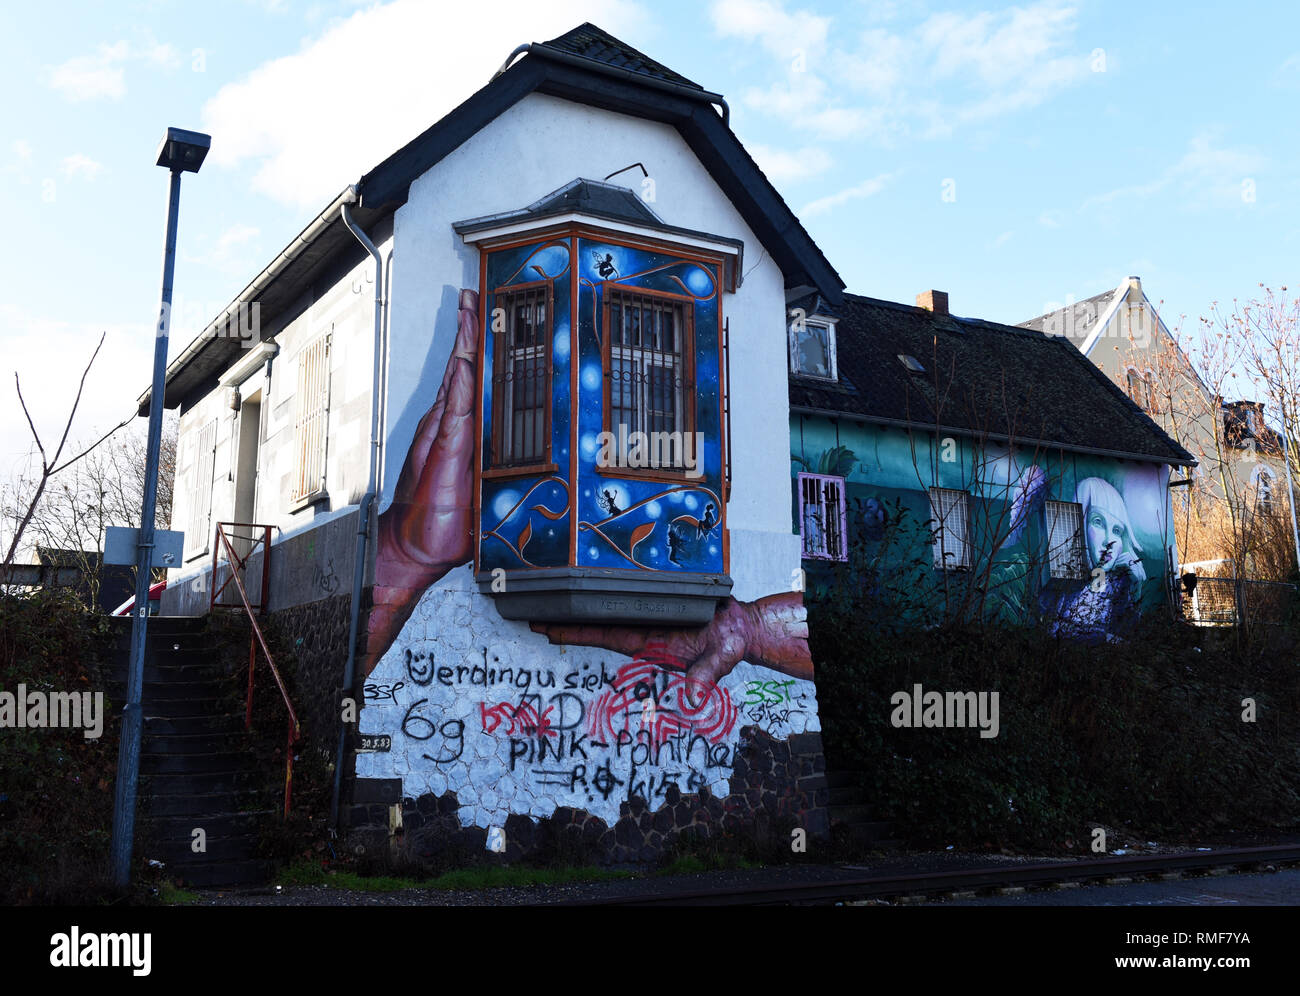 Krefeld, Germany. 11th Feb, 2019. 'Street Art Art' at a house on the banks of the Rhine in the district of Uerdingen, which was created by the street art artists 'Ketty Grossi' (l) and 'Maria Kudasheva' as part of the event 'Rhine Side Gallery 2018' of the city of Krefeld. Credit: Horst Ossinger/dpa/Alamy Live News - Stock Image